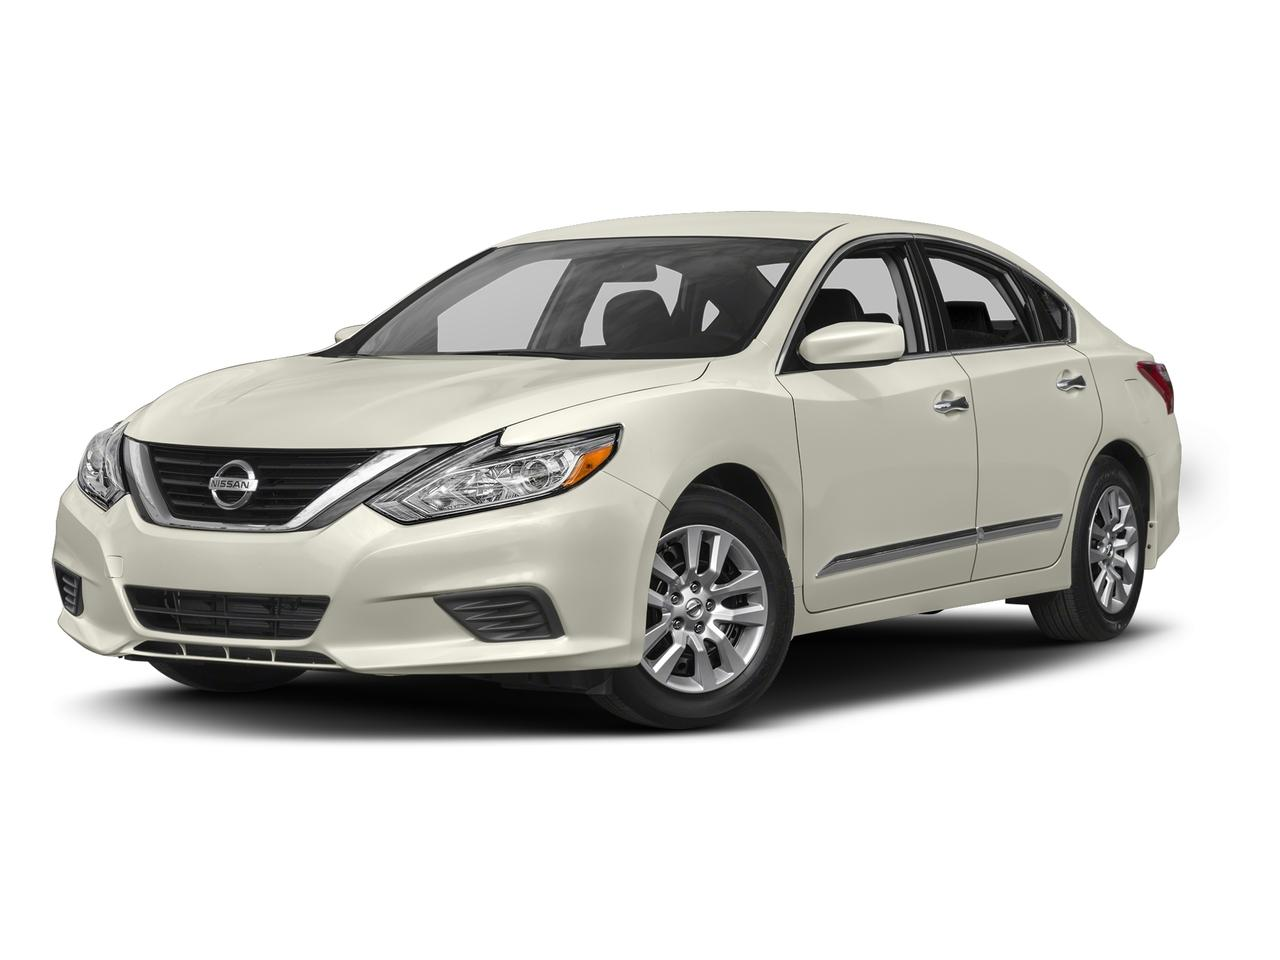 2017 Nissan Altima Vehicle Photo in DANVILLE, KY 40422-1146